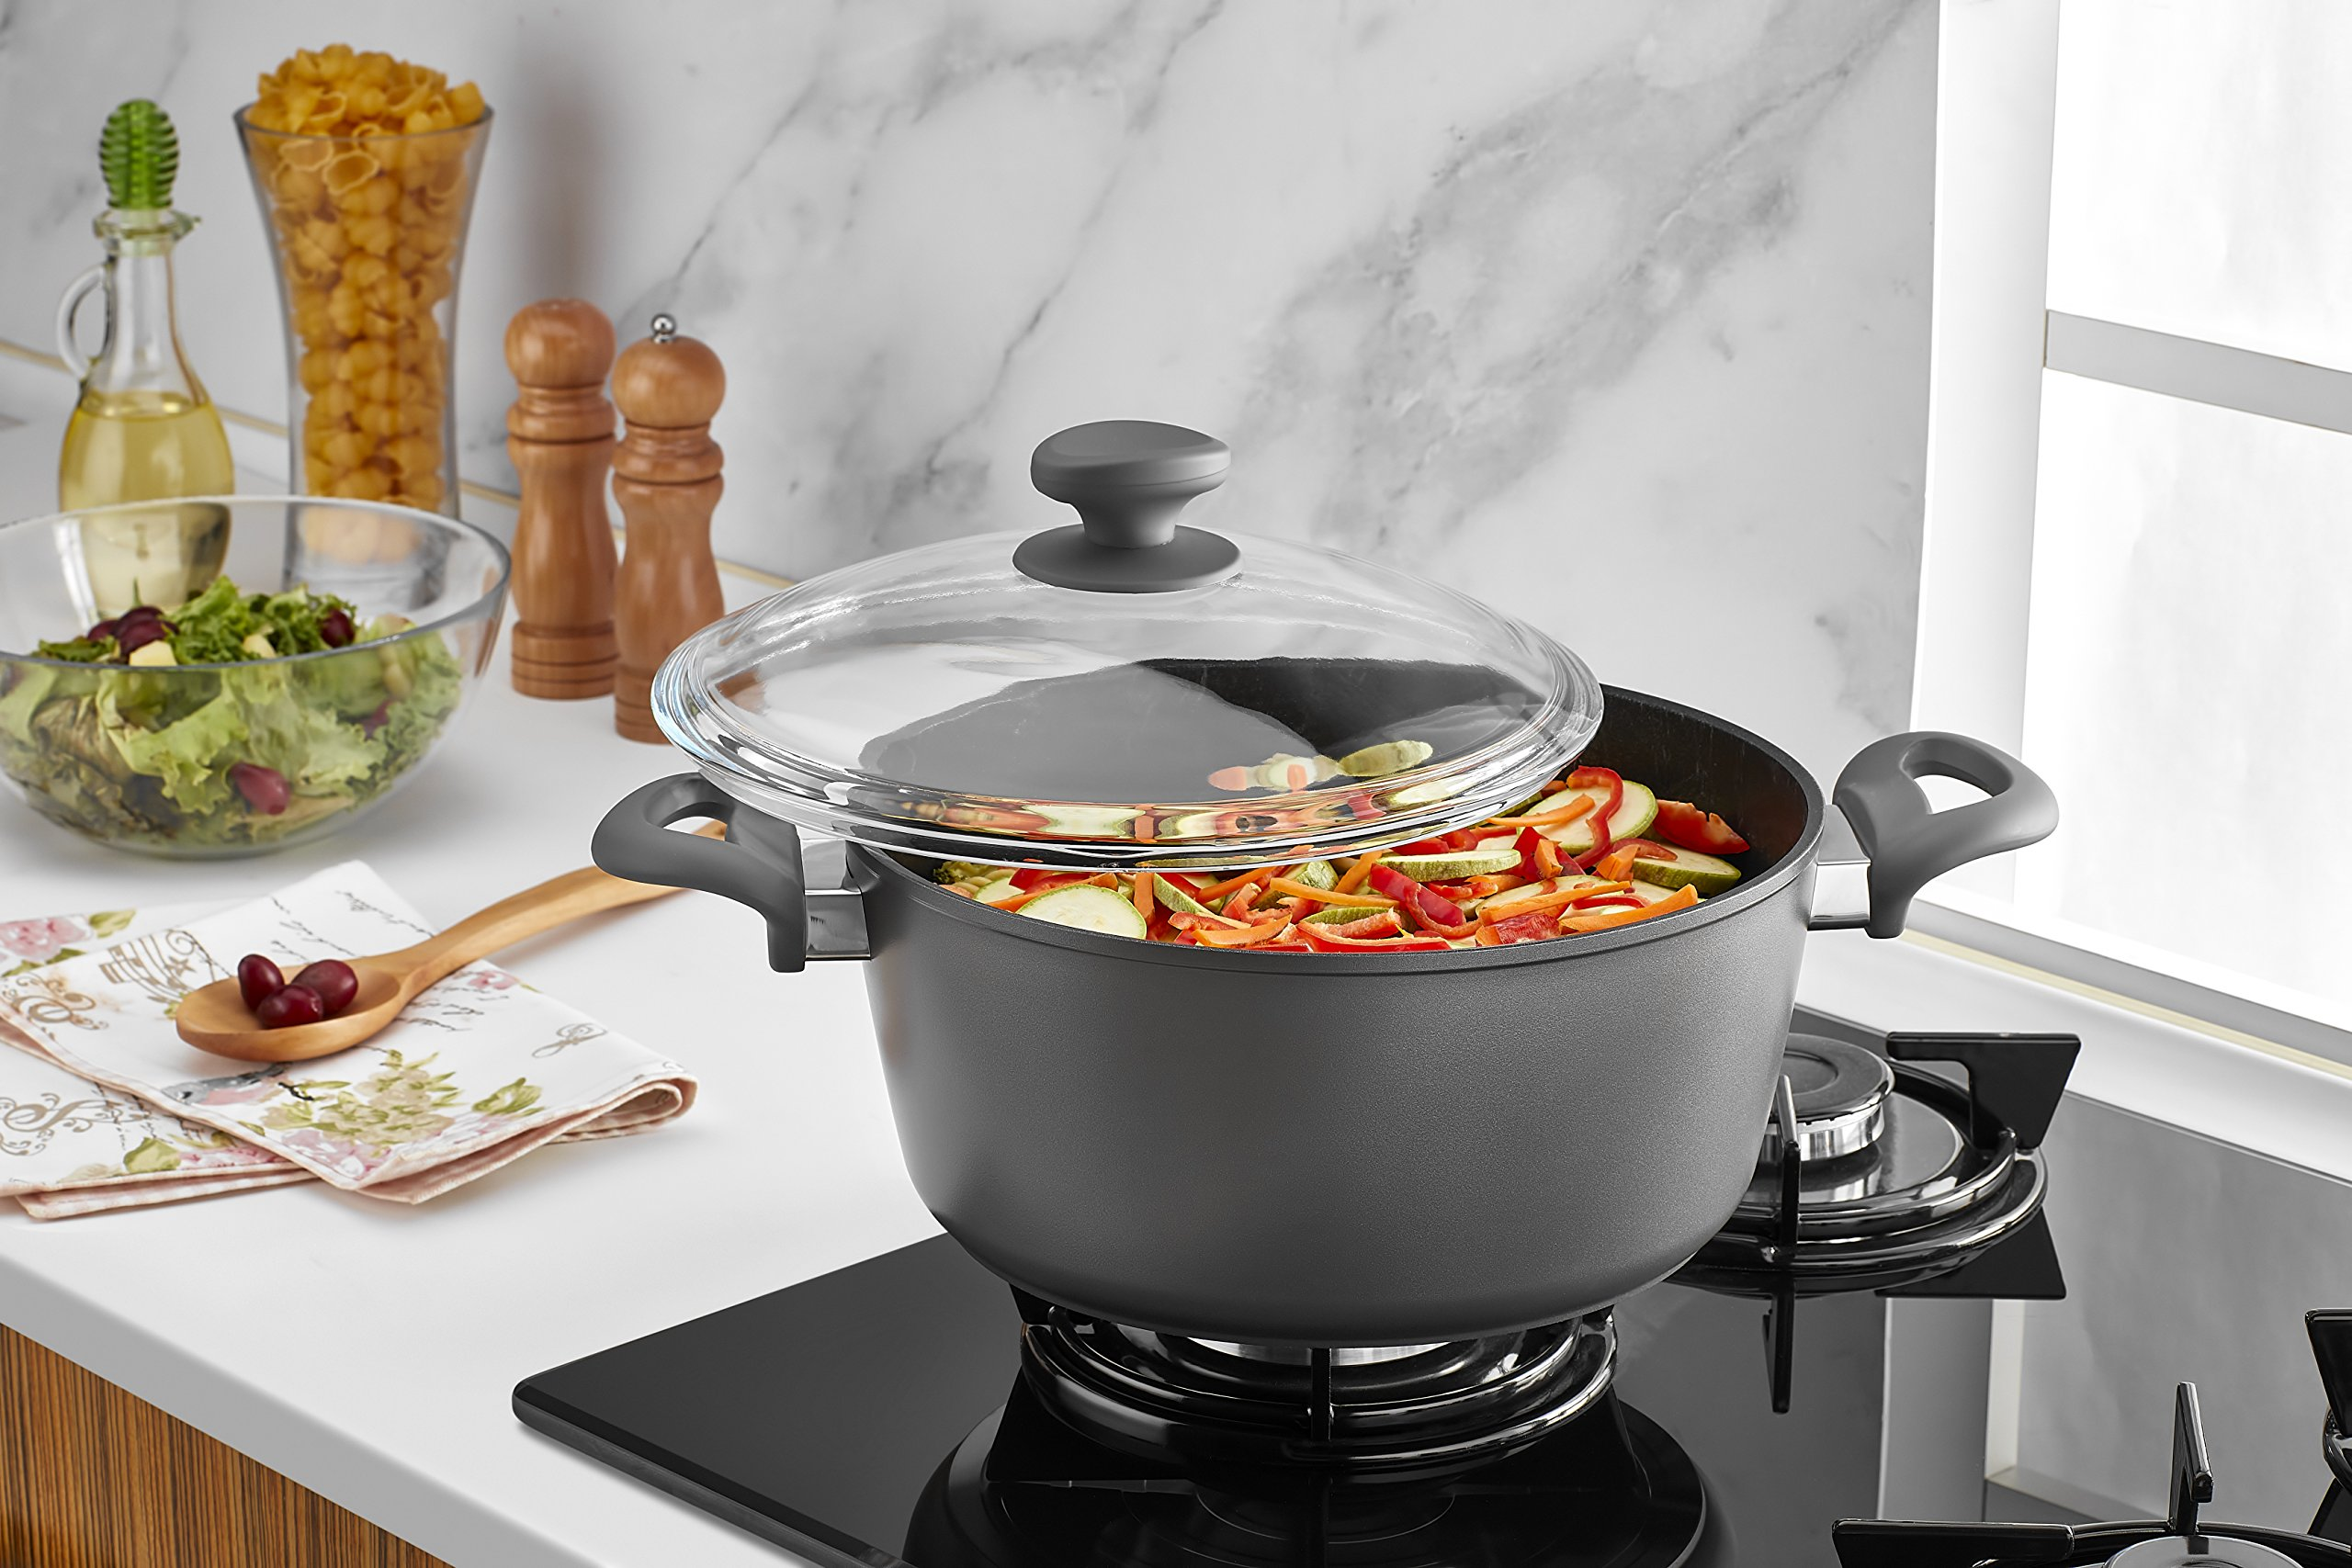 Saflon Titanium Nonstick 8-Quart Stock Pot with Tempered Glass Lid, 4mm Forged Aluminum with PFOA Free Coating from England by SAFLON (Image #5)